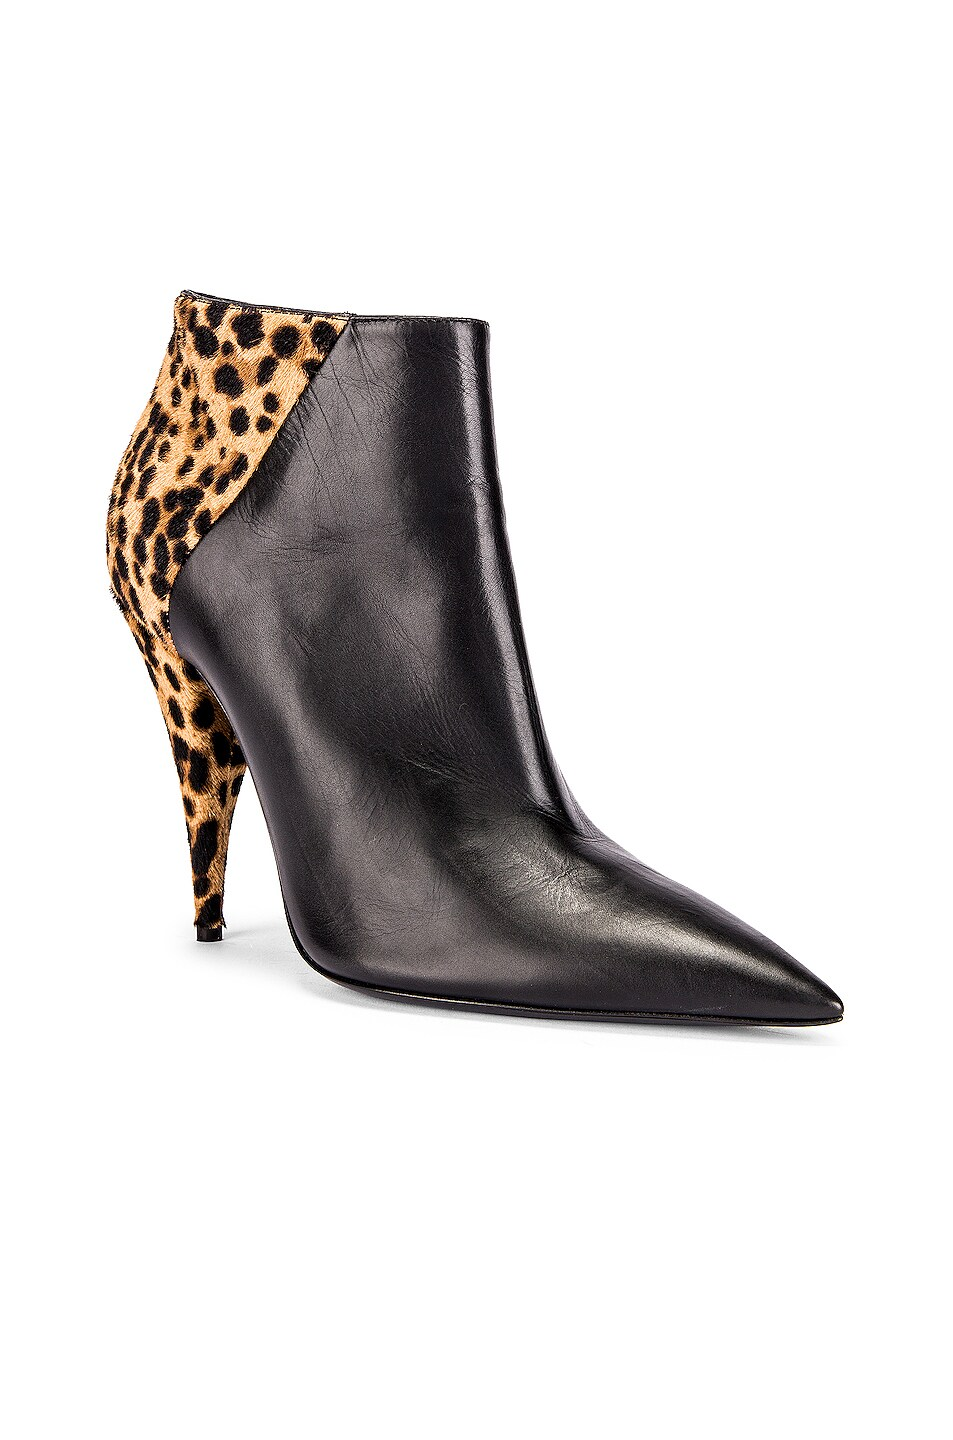 Image 2 of Saint Laurent Kiki Zip Booties in Black & Natural